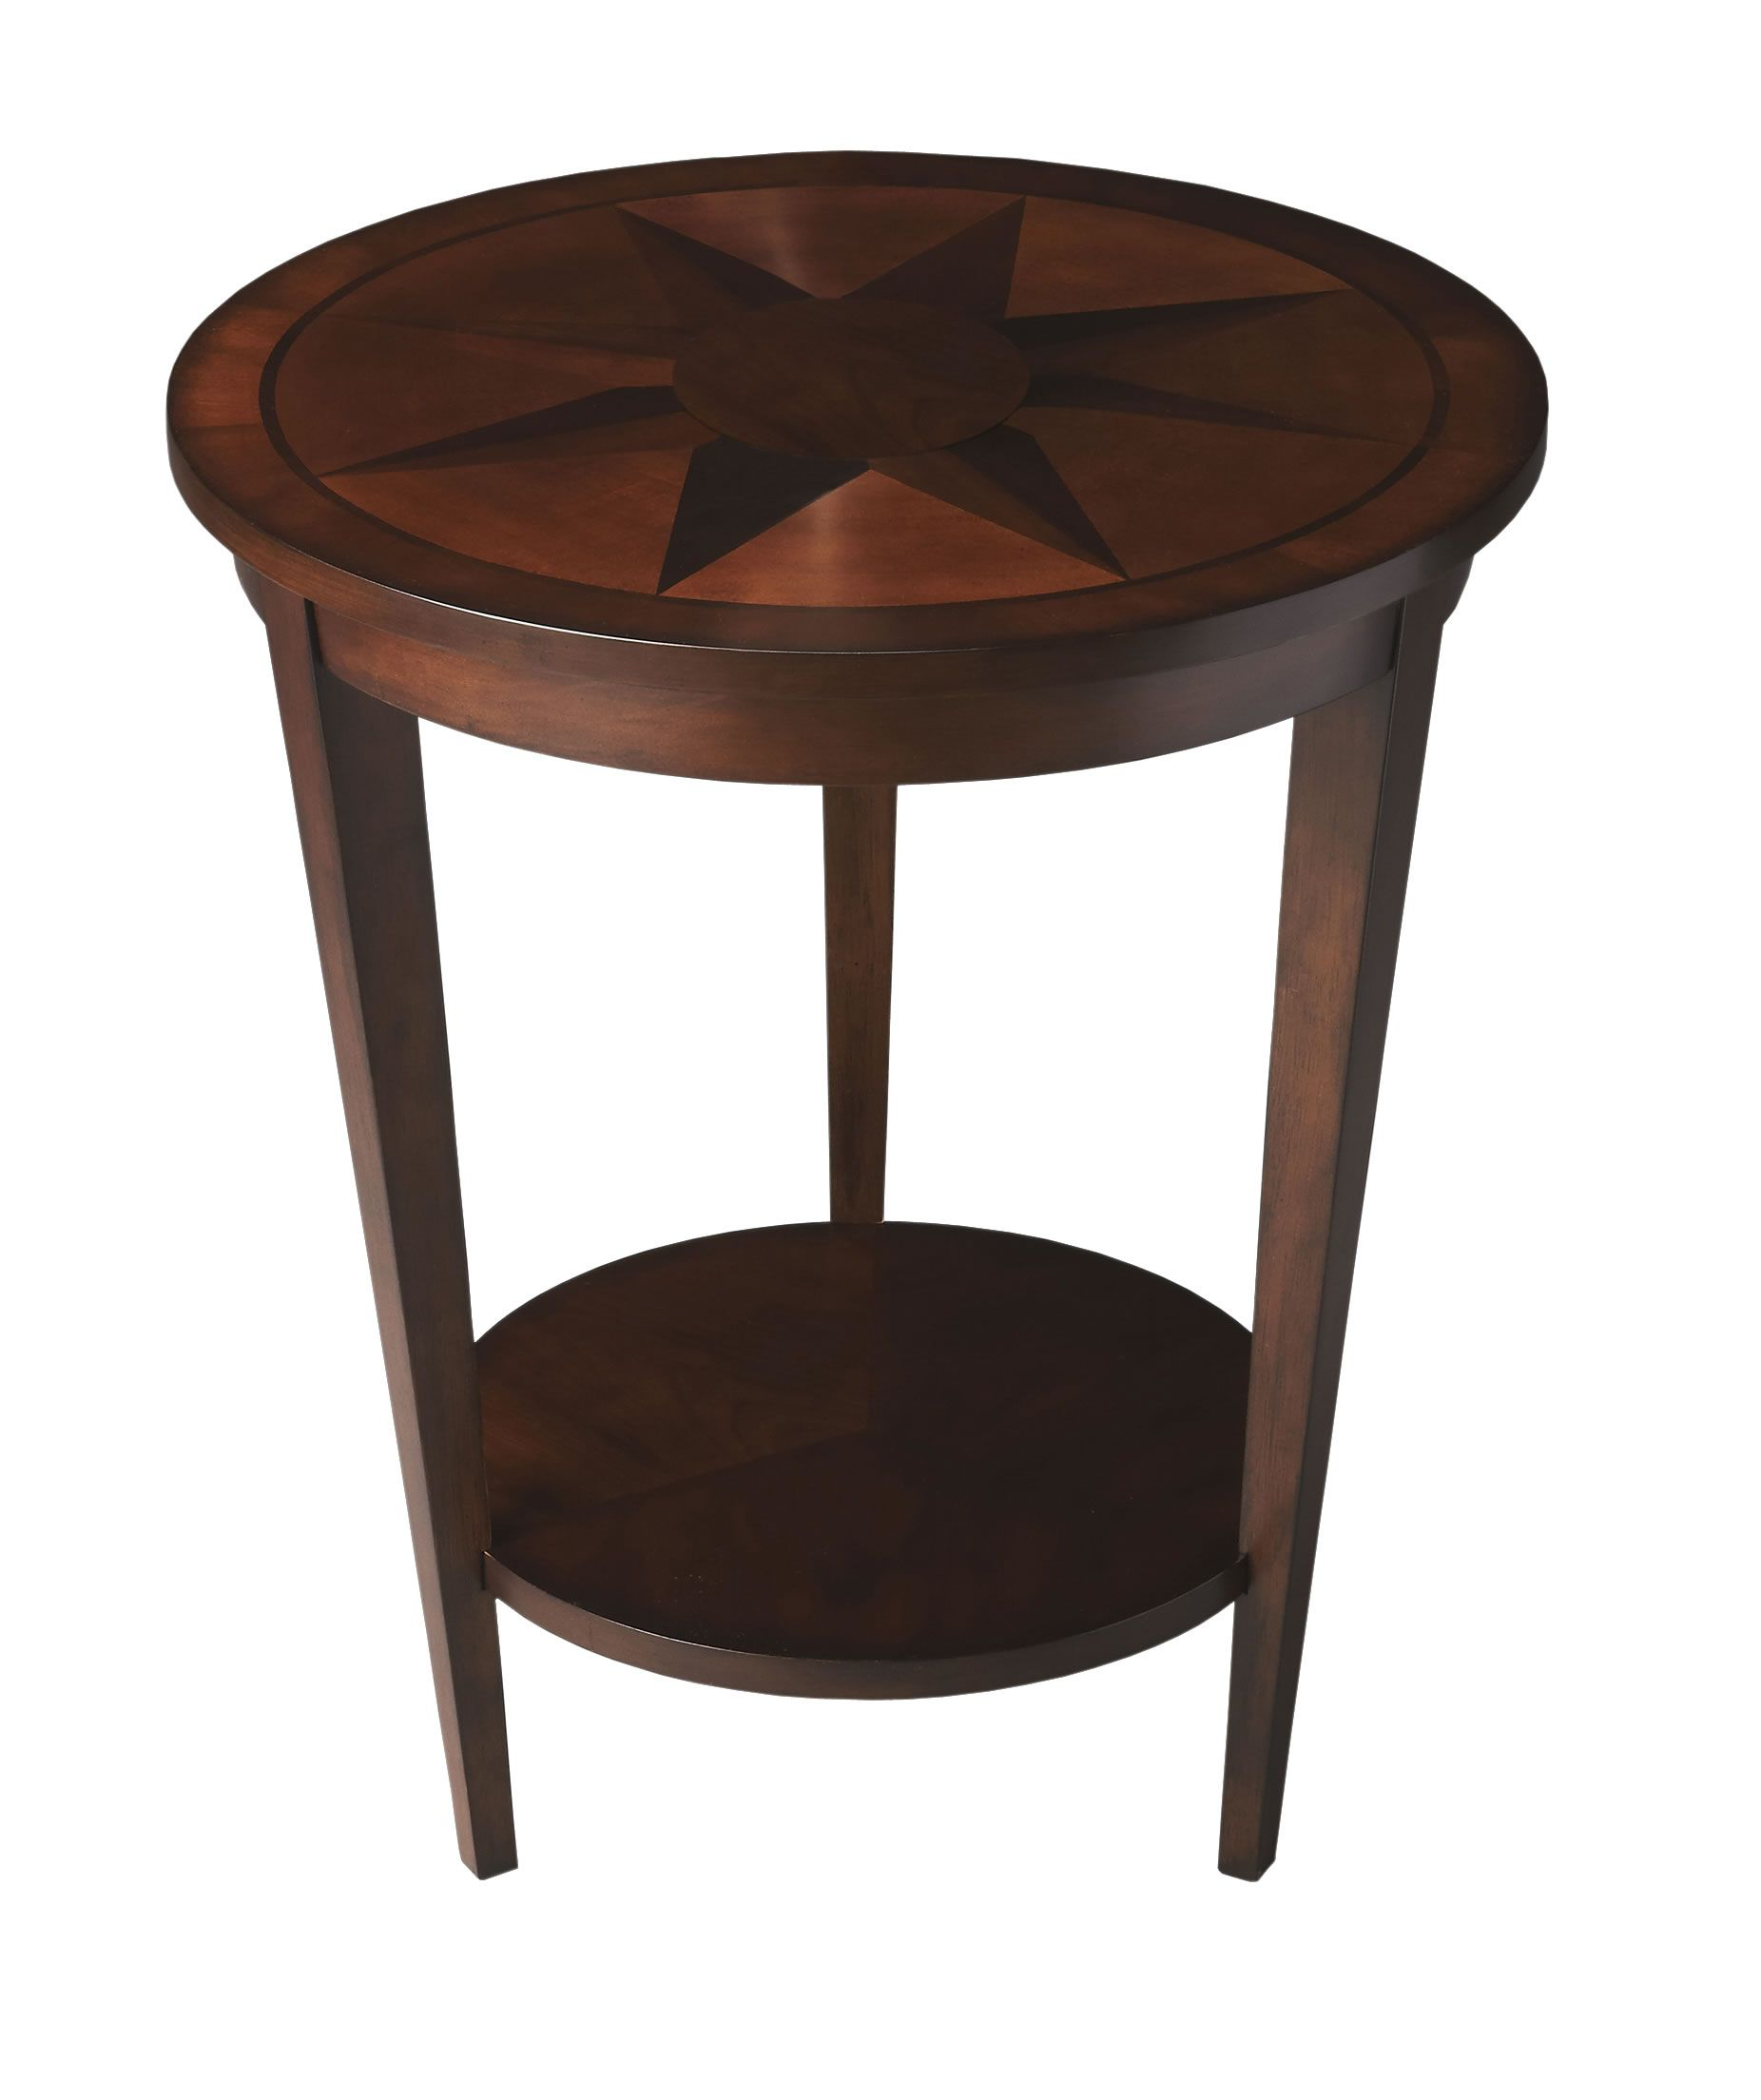 nautical compass side table espresso this dazzling transitional round accent features engaging starburst inlay and reverse tapered legs conjoined narrow couch outdoor patio lights